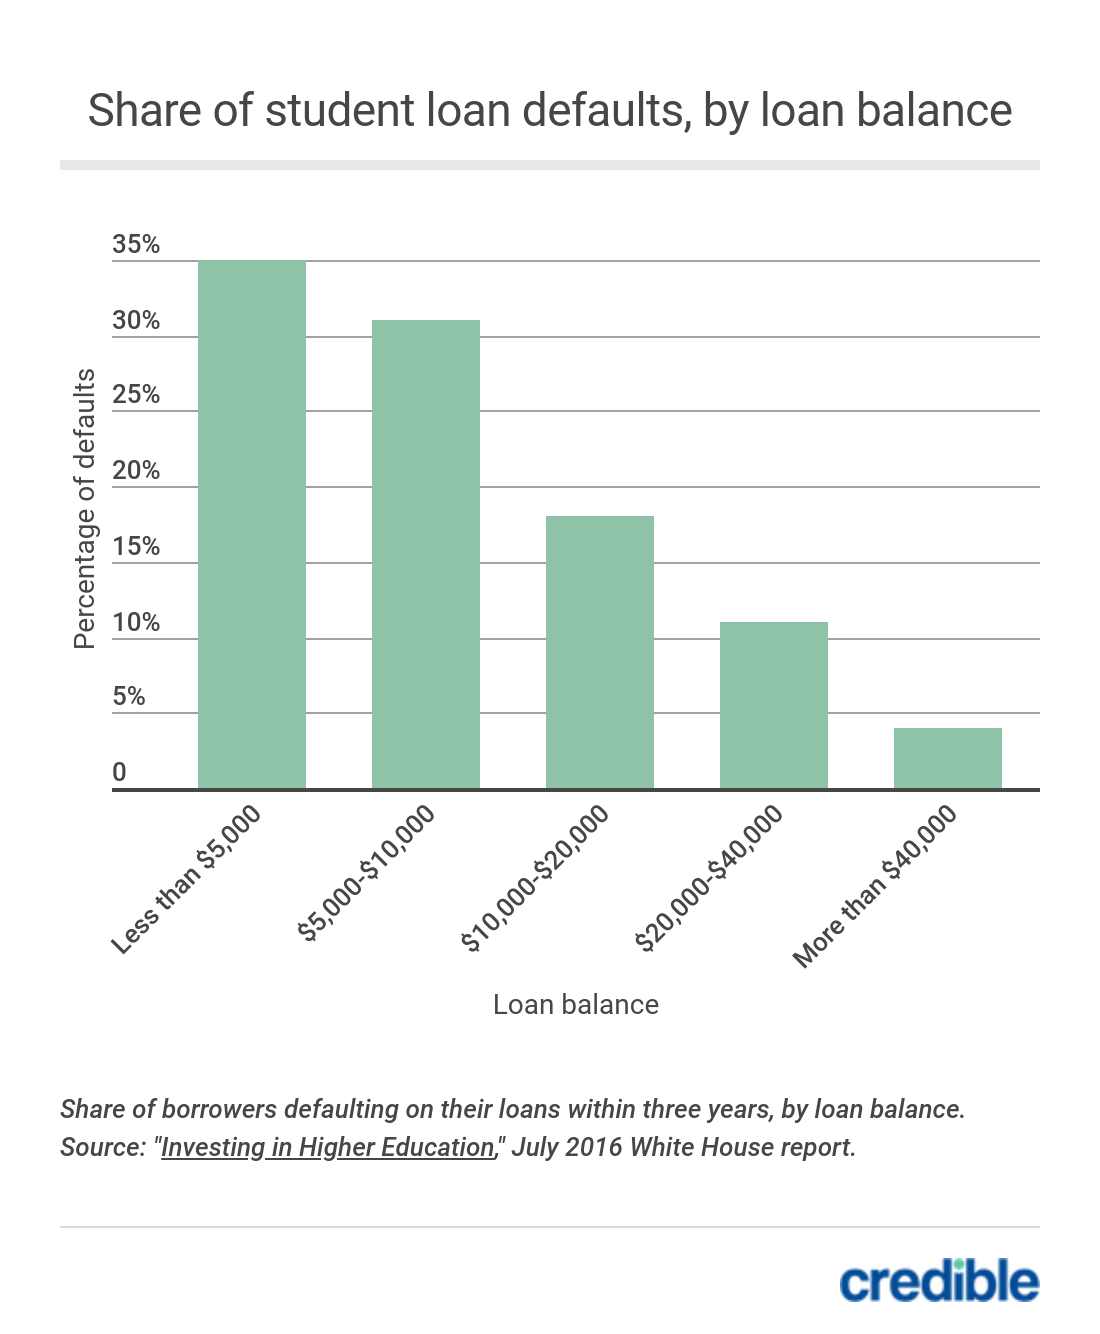 Share of student loan defaults, by loan balance